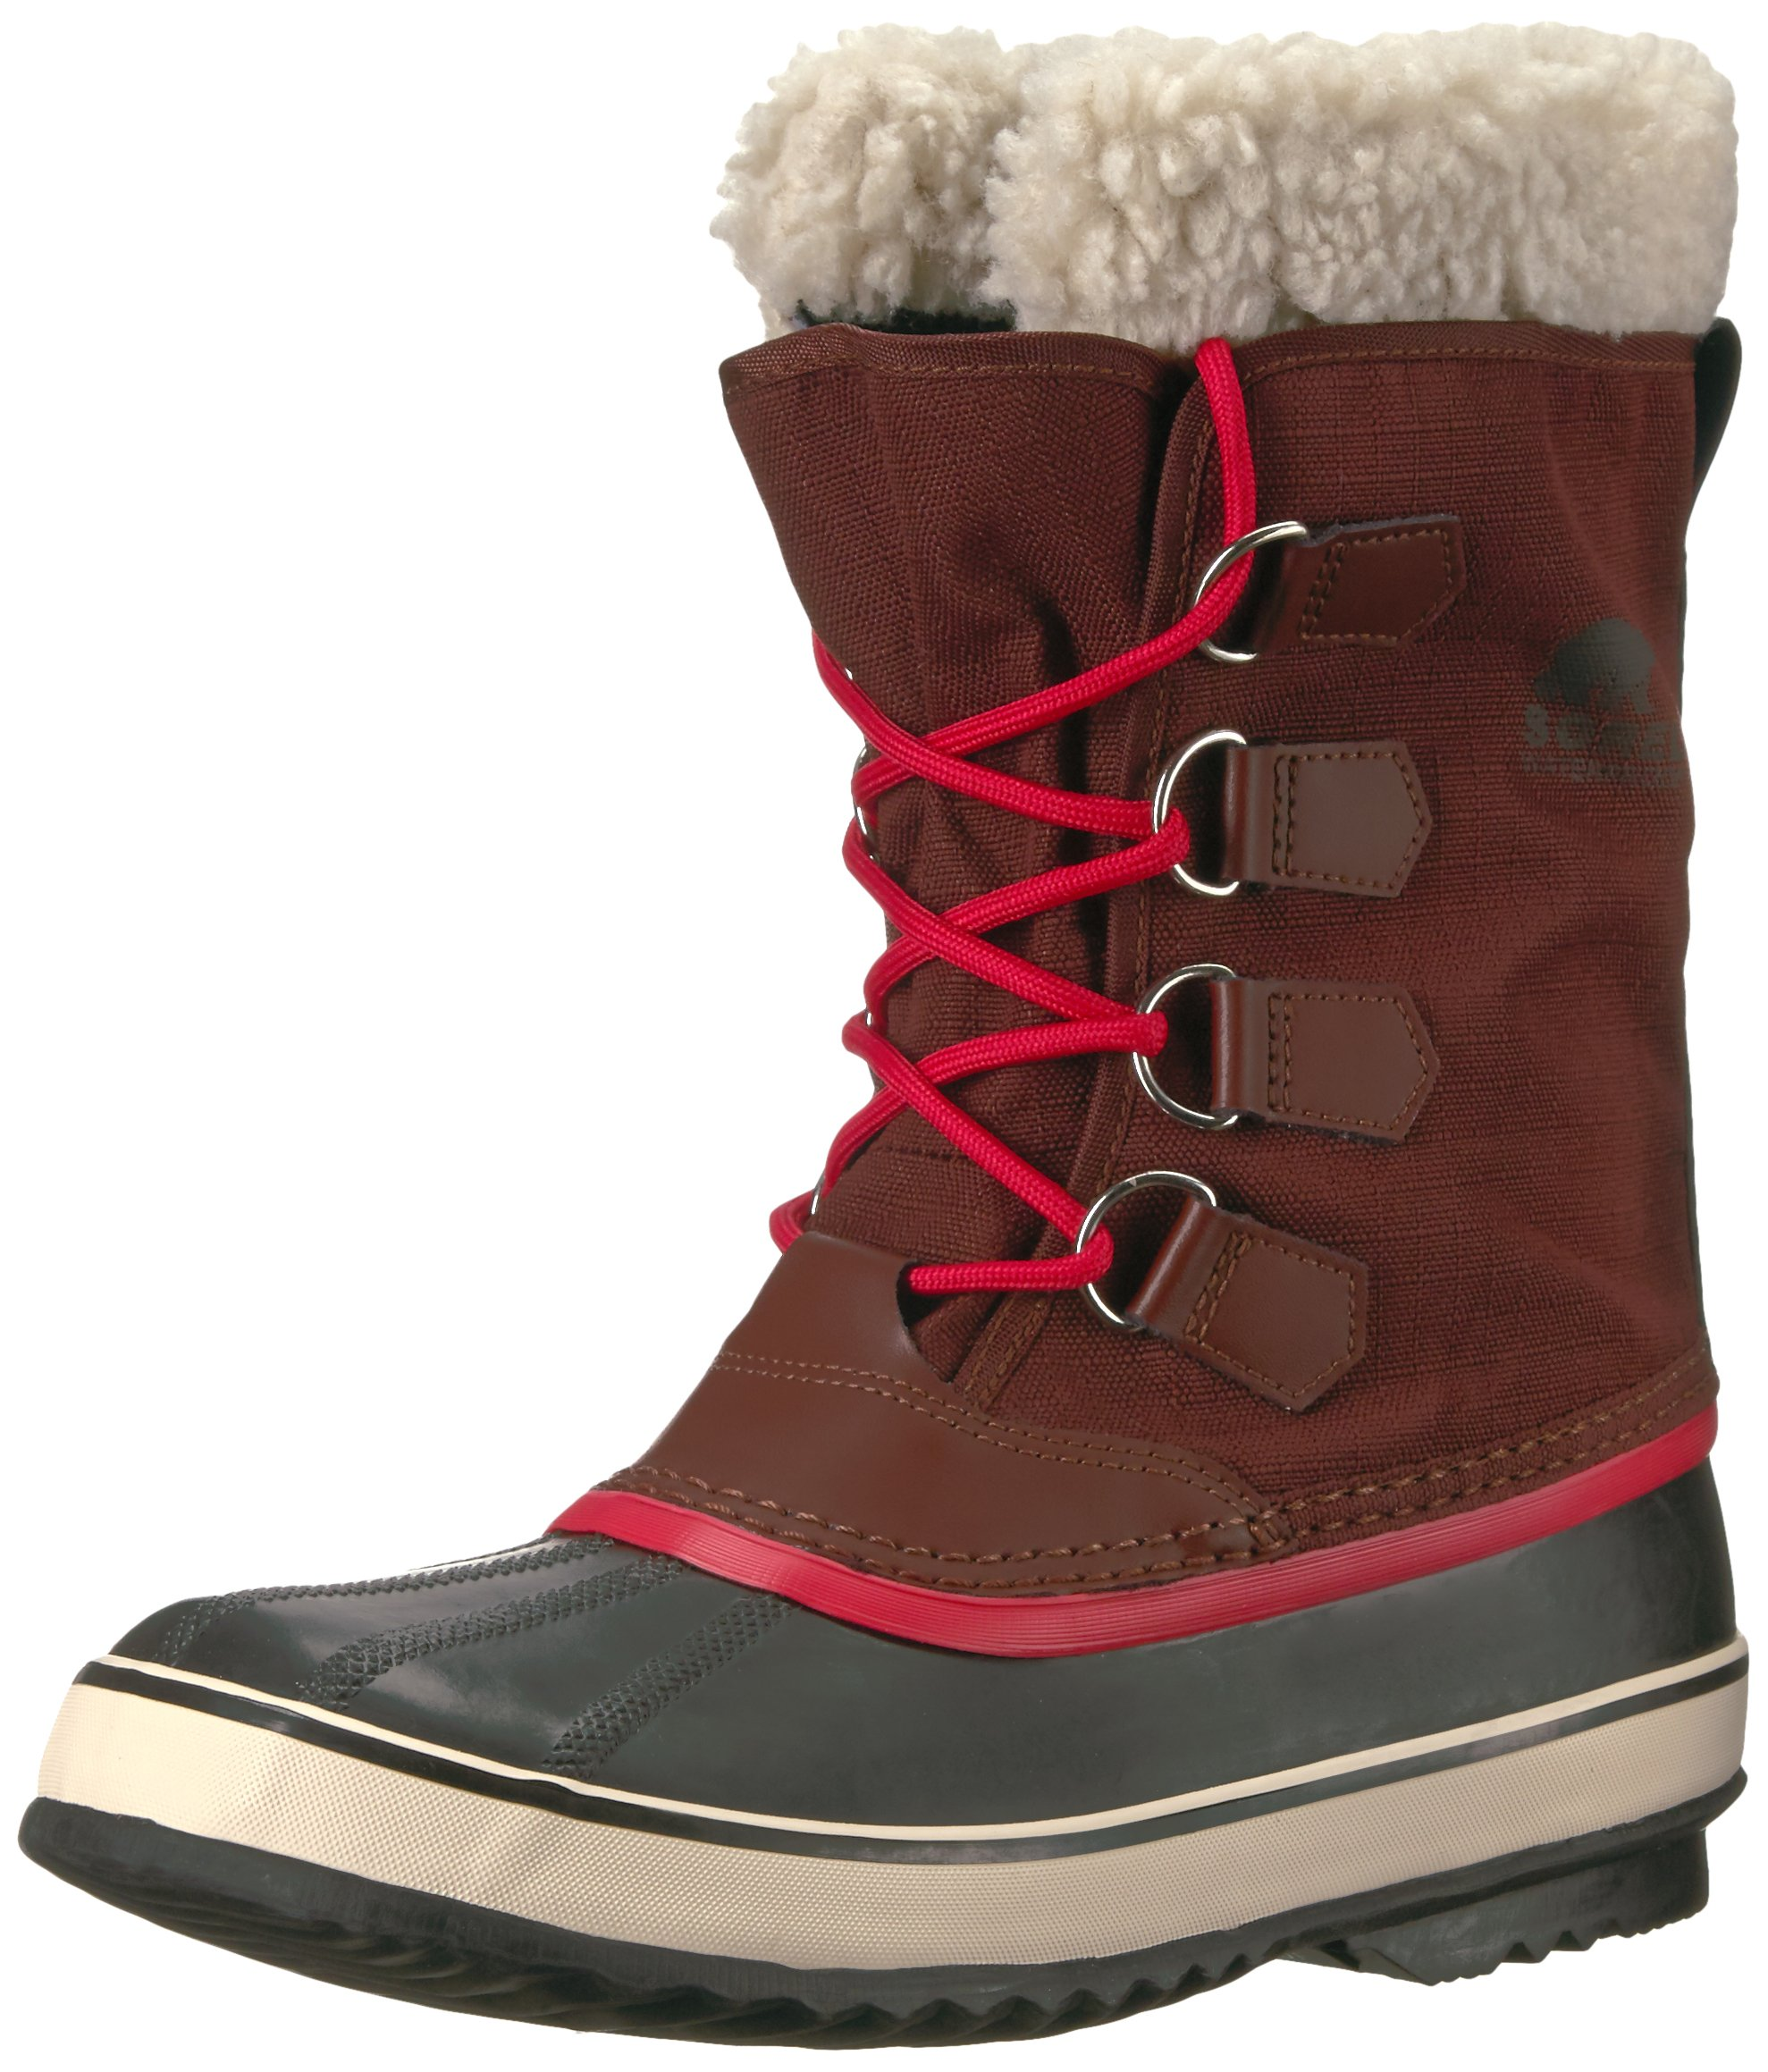 Sorel Women's Winter Carnival Snow Boot, Redwood, Candy Apple, 7 B US